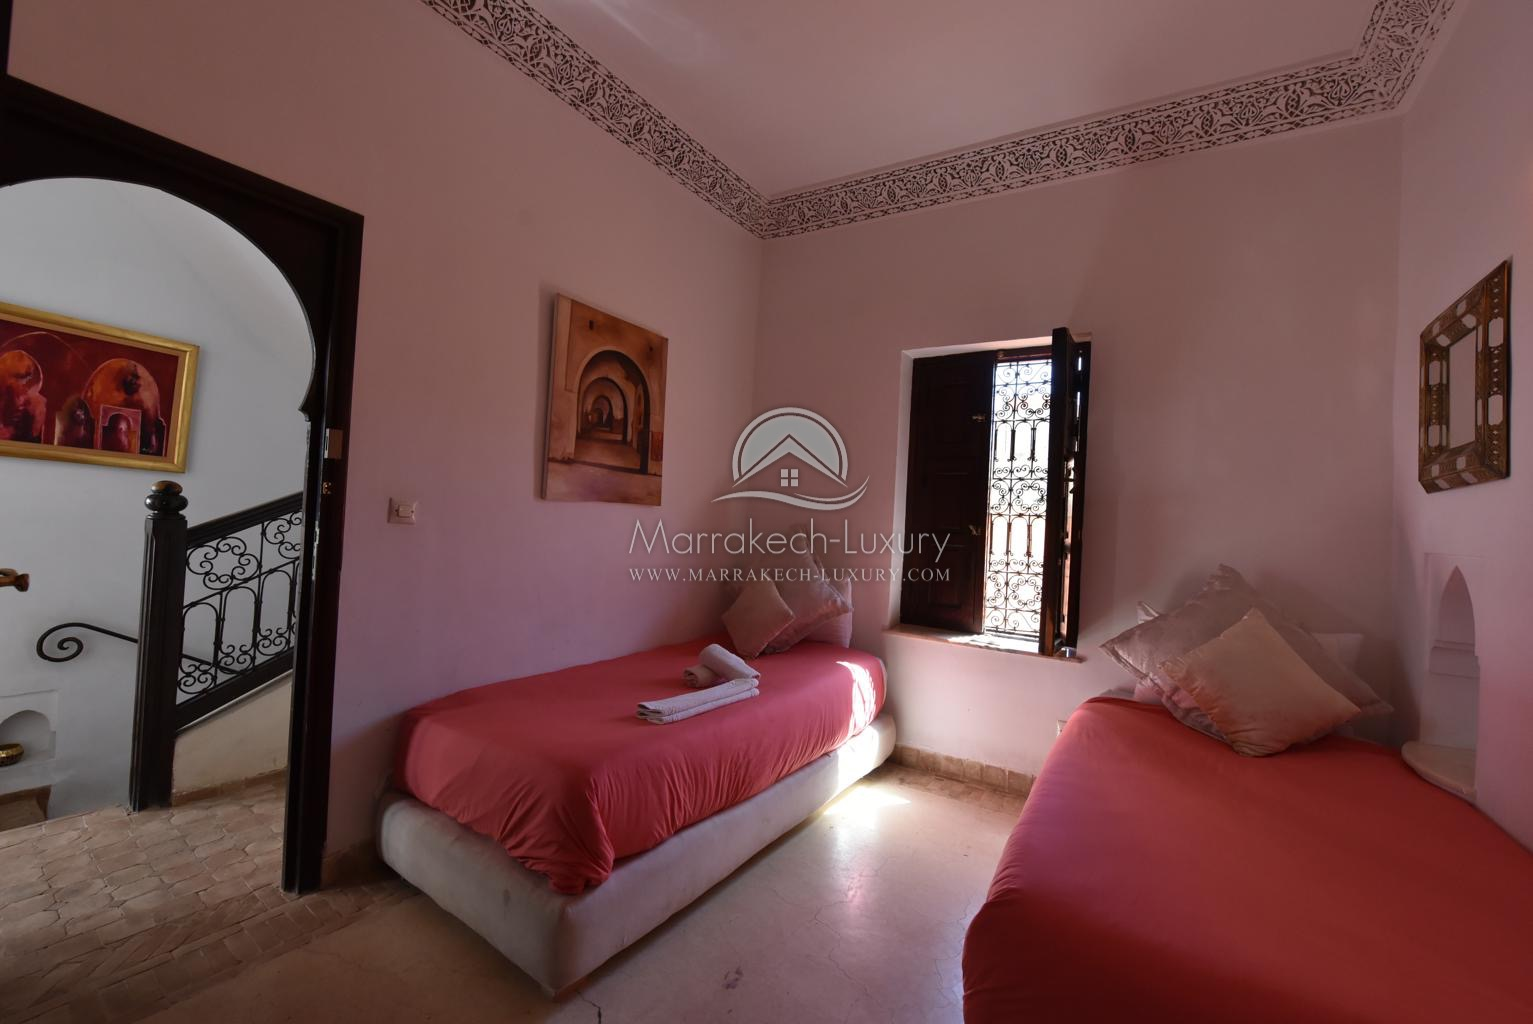 Riaavmed1037ma 33 agence immobili re marrakech acheter for Agence immobiliere 33